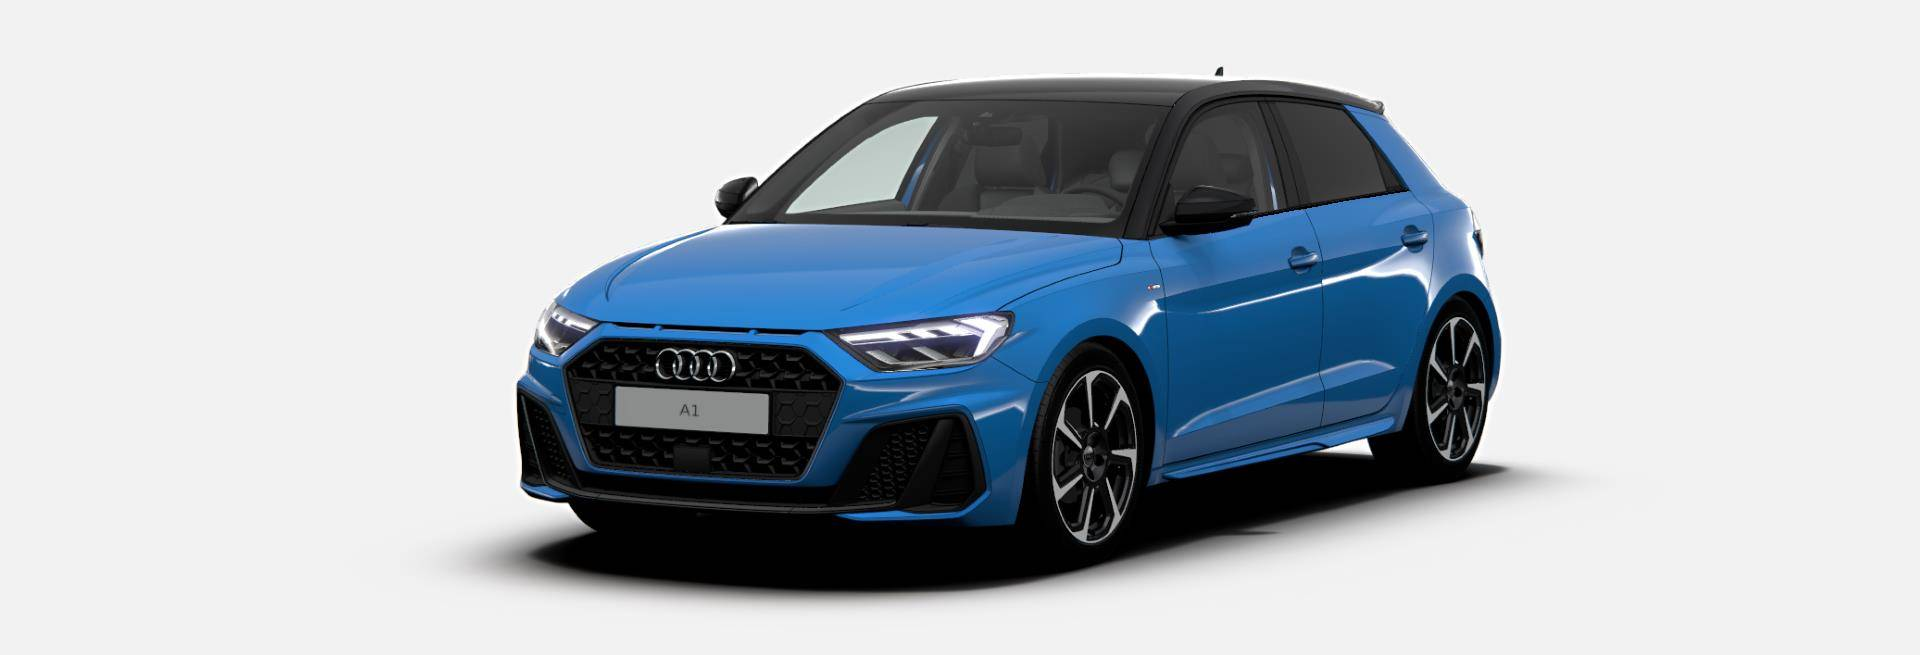 Nouvelle Audi A1 Turbo Blue Edition 9